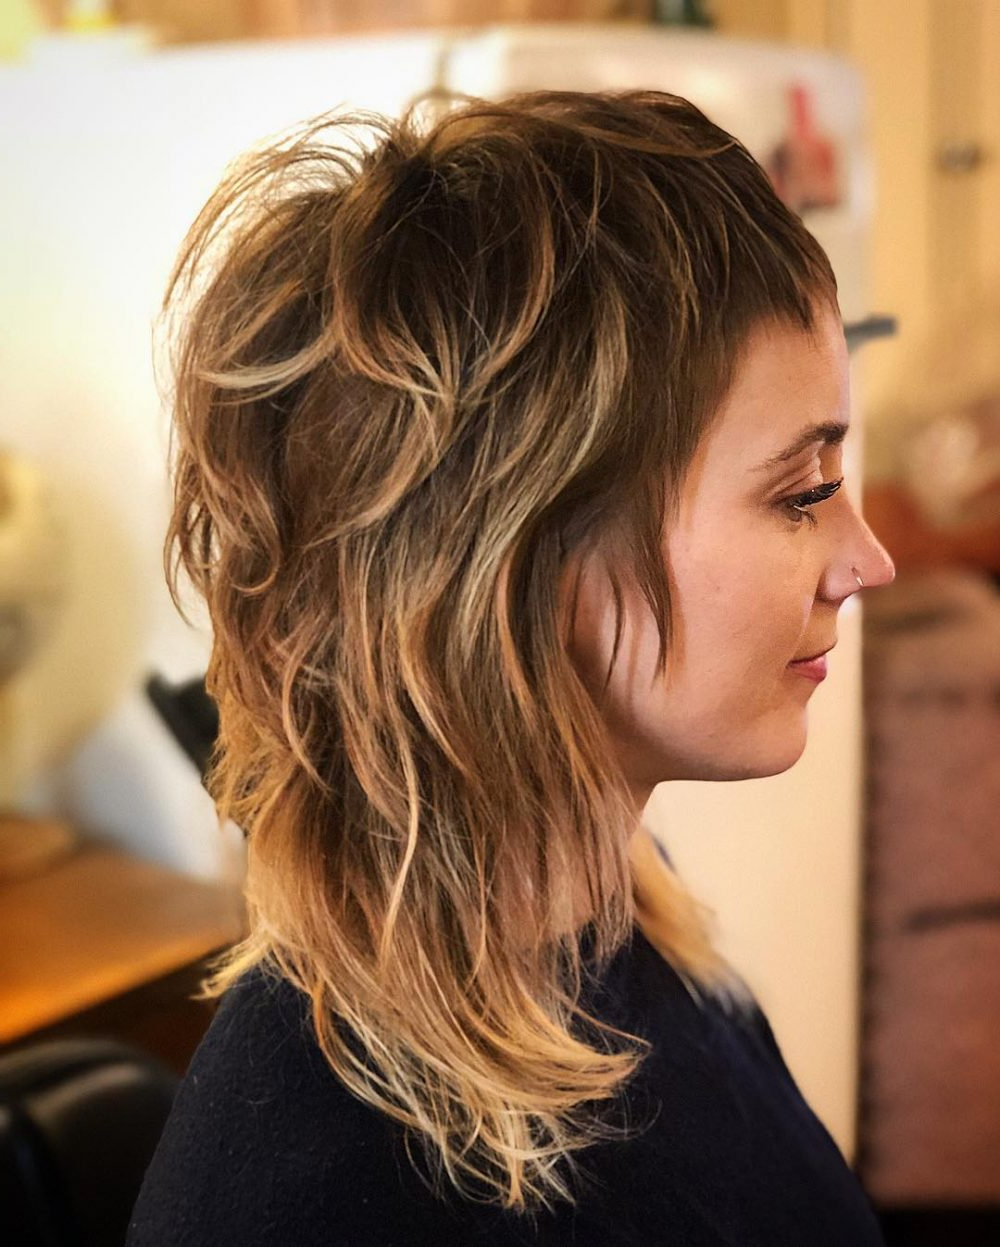 34 Short Bangs That Are Totally Hot In 2018 In Very Short Haircuts With Long Bangs (View 2 of 25)